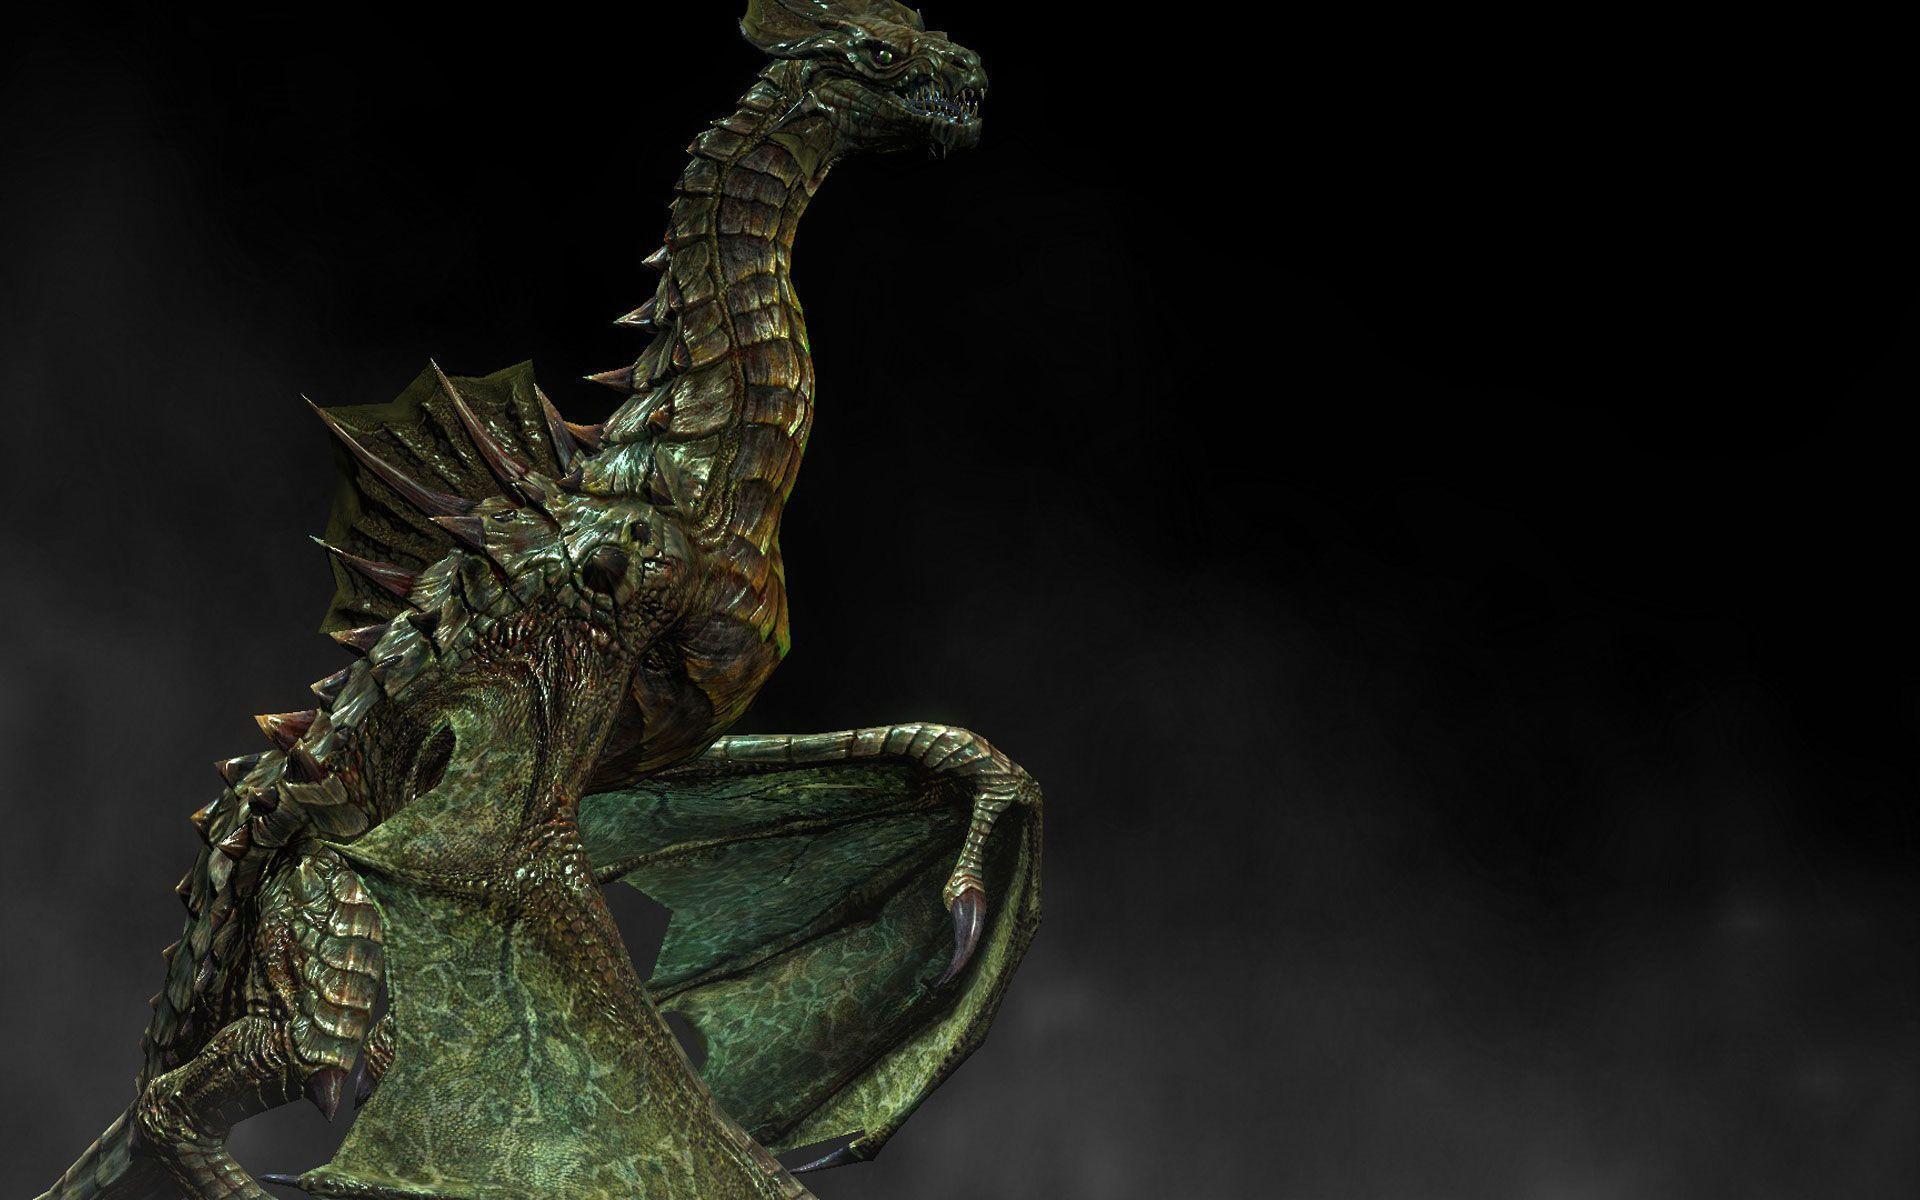 Skyrim Swamp Dragon Of Wallpapers In HD, HQ Backgrounds